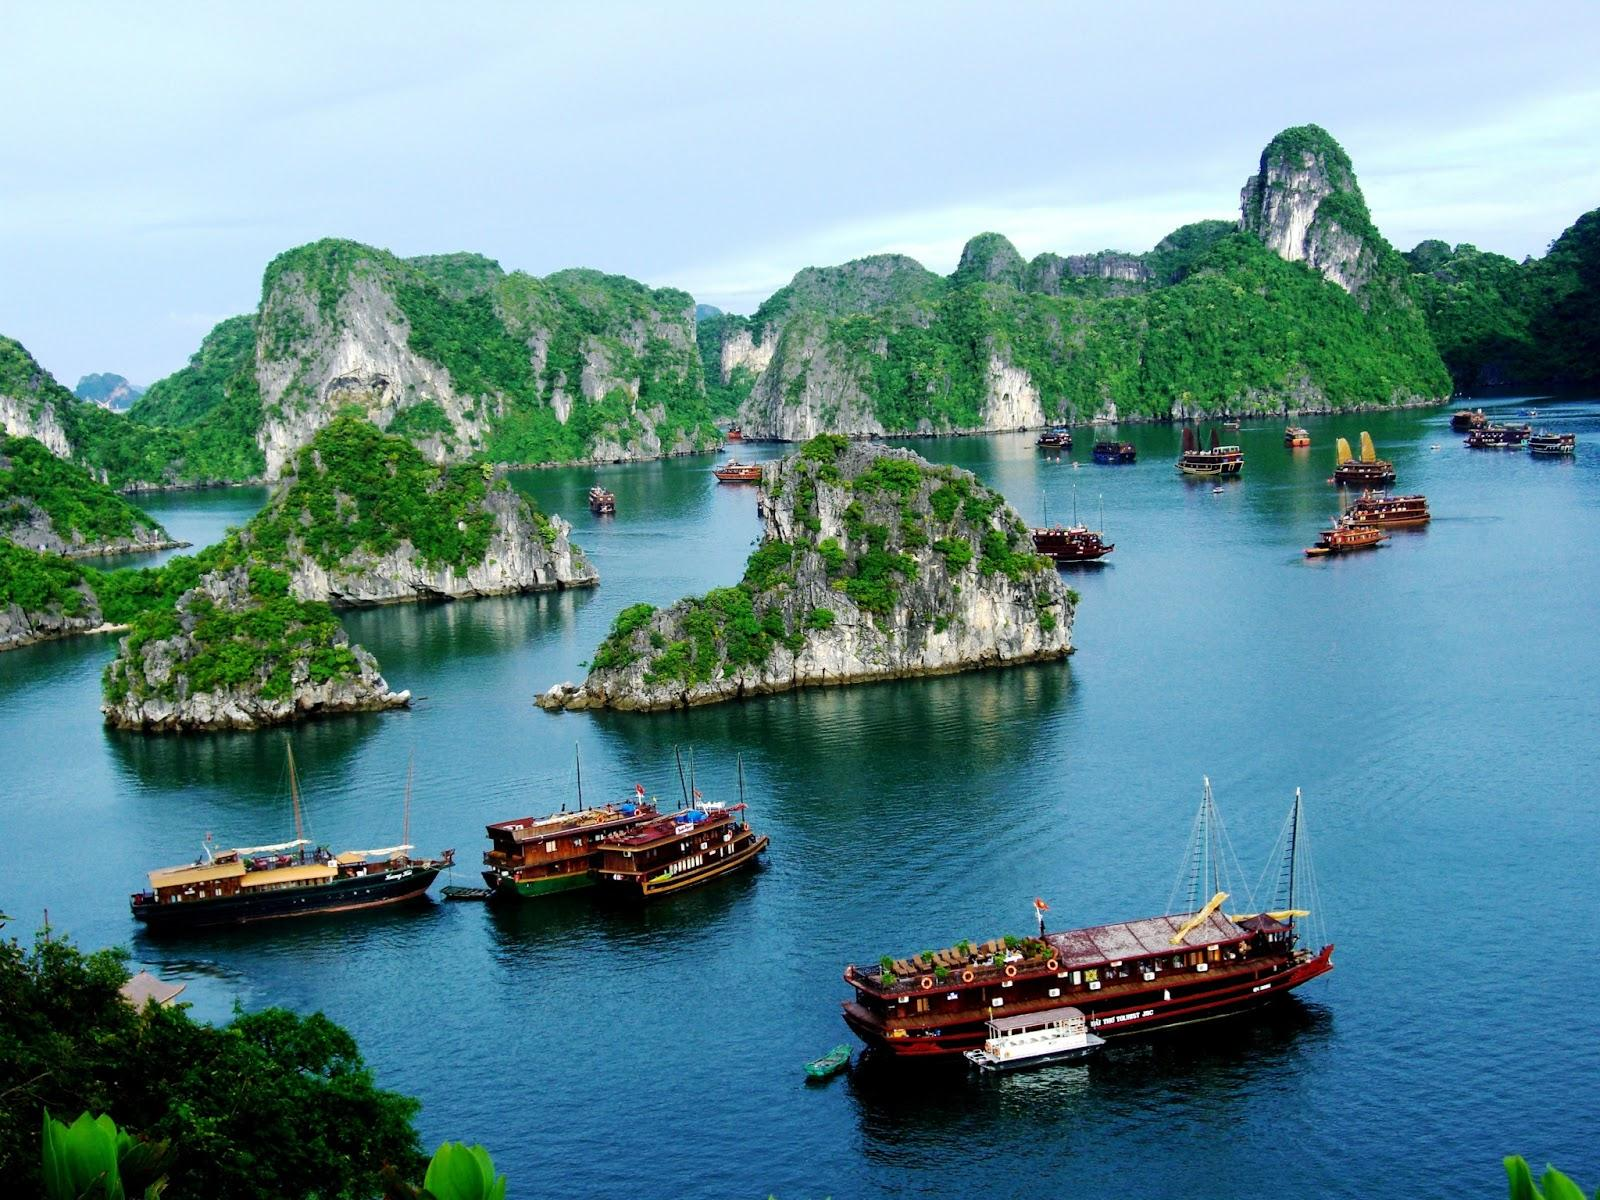 Halong Bay is the most famous destination in Vietnam because of its charming beauty